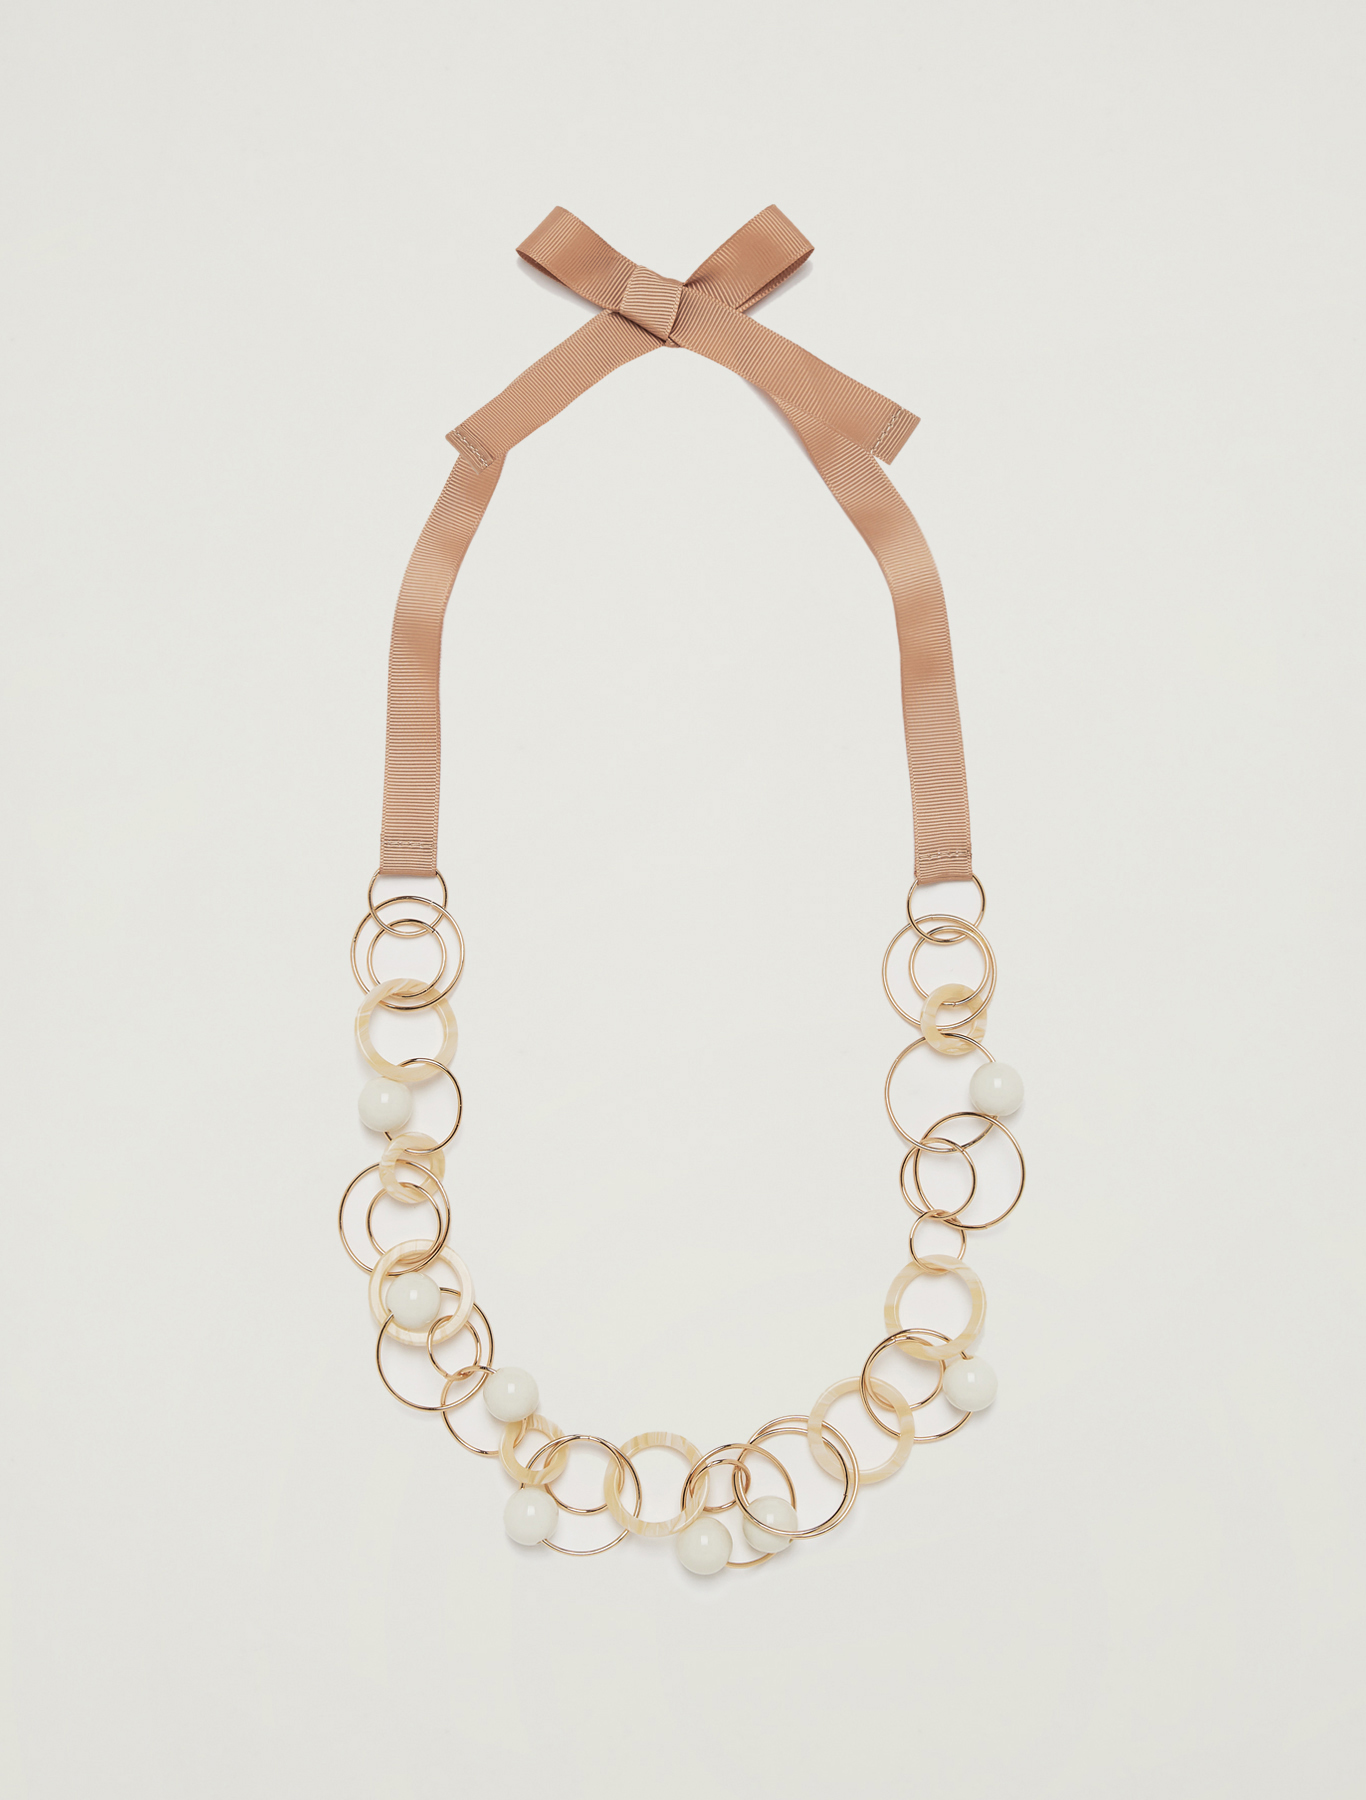 Necklace with rings and baubles - sunshine yellow - pennyblack